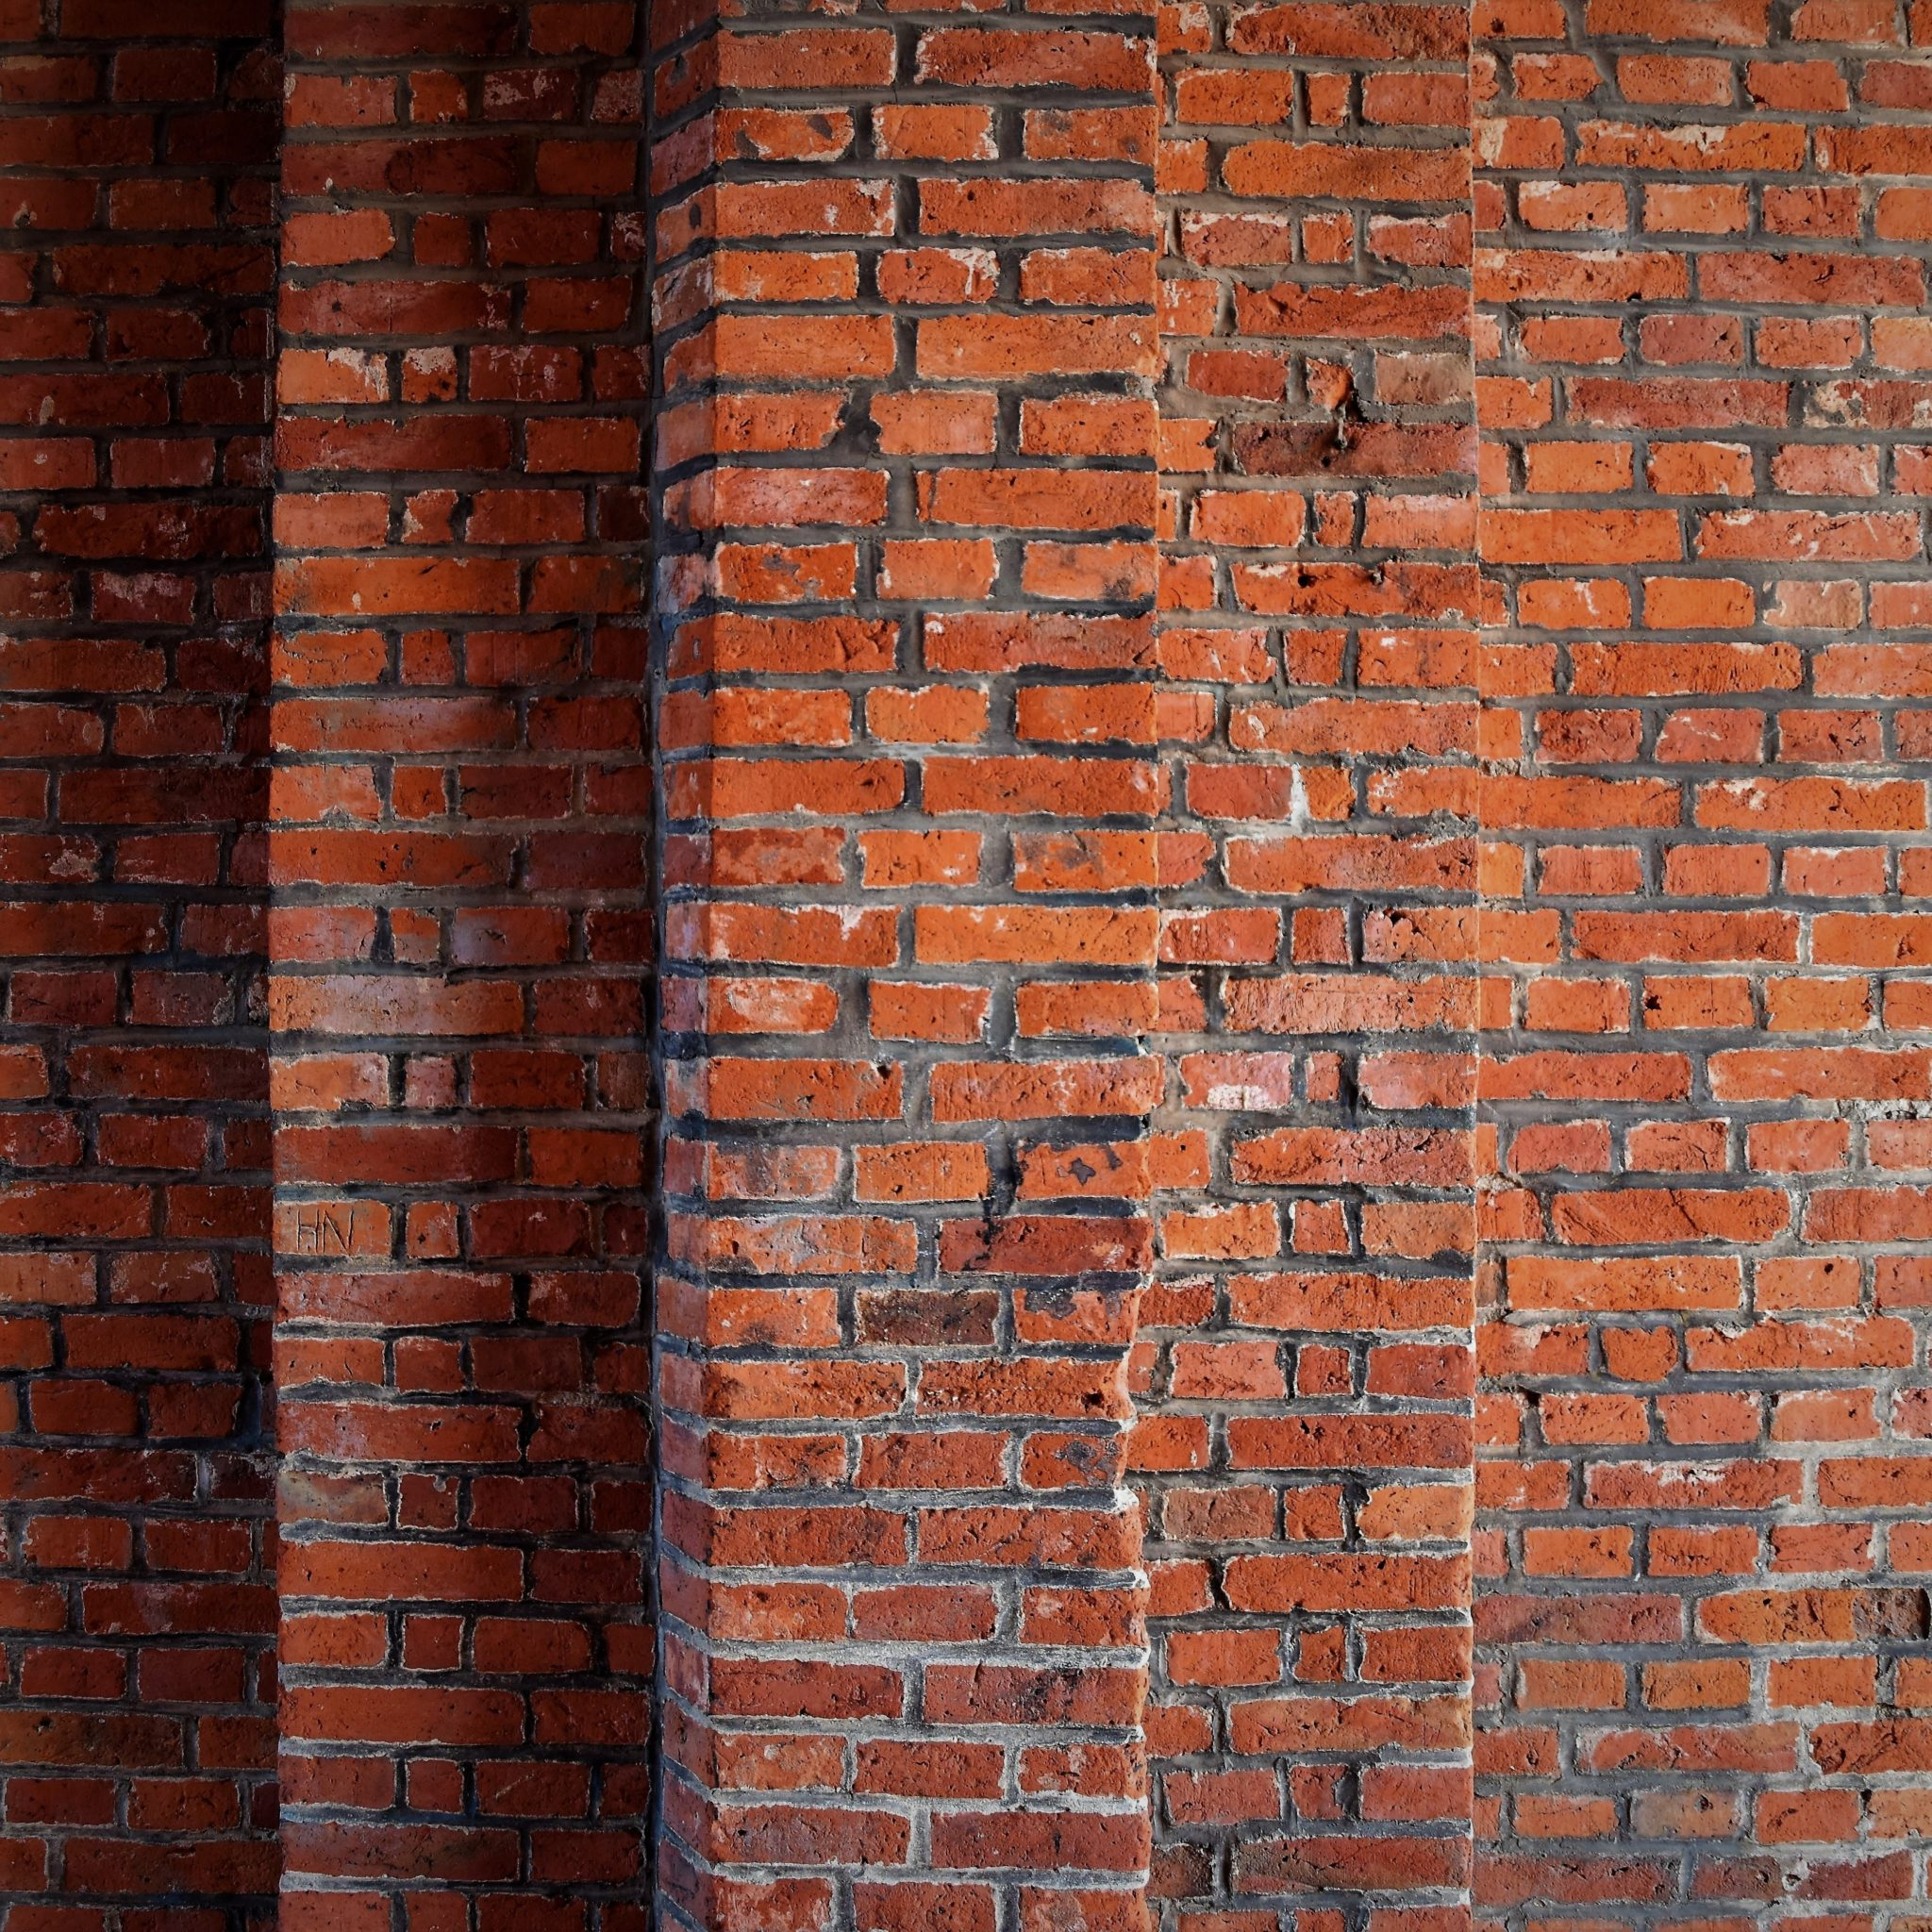 photogrammetry_brick_sample